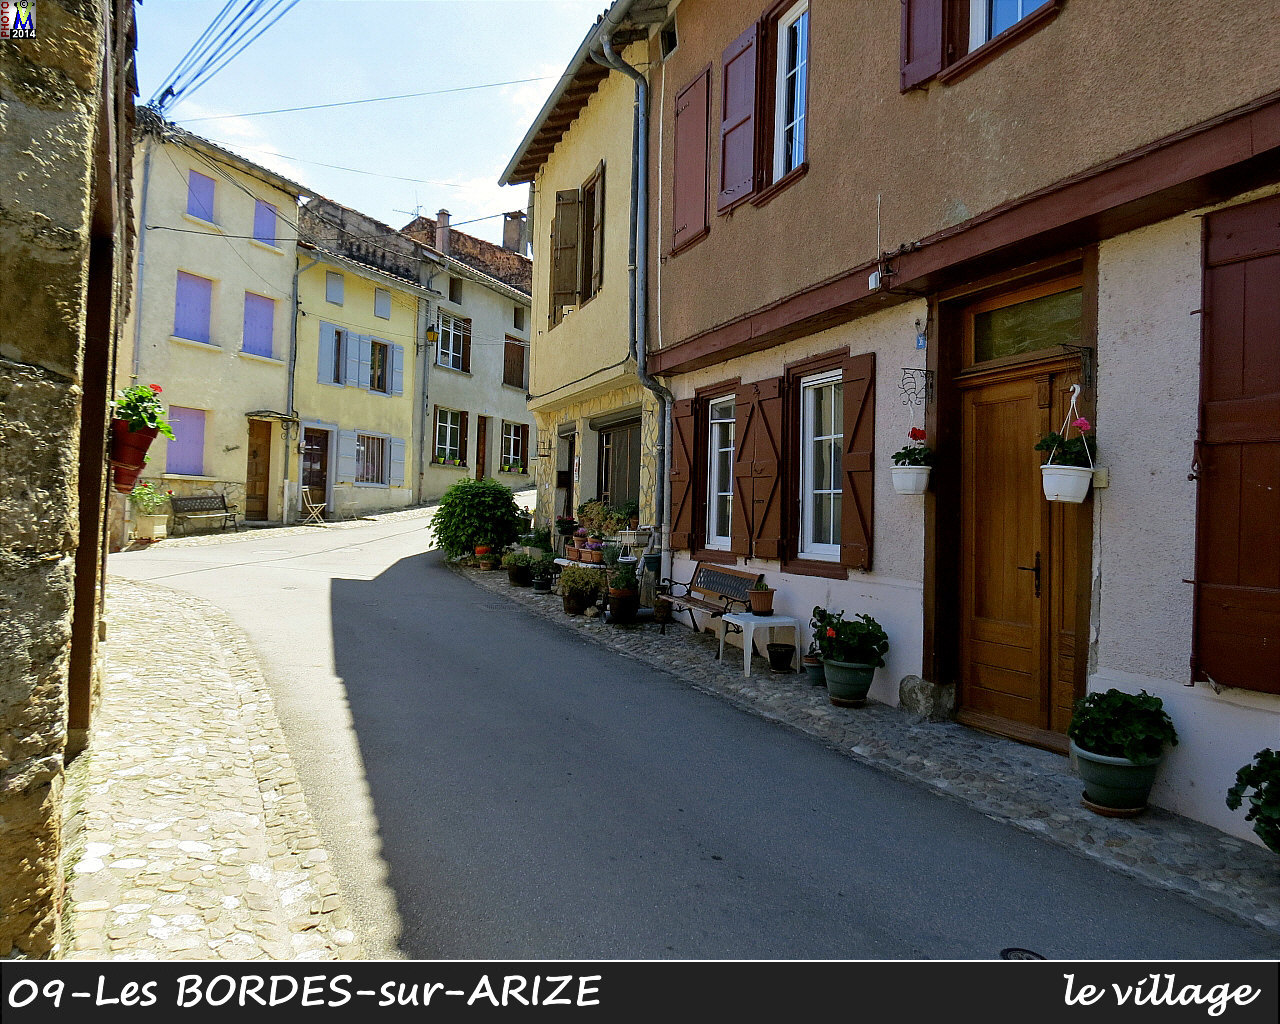 09BORDES-ARIZE_village_118.jpg